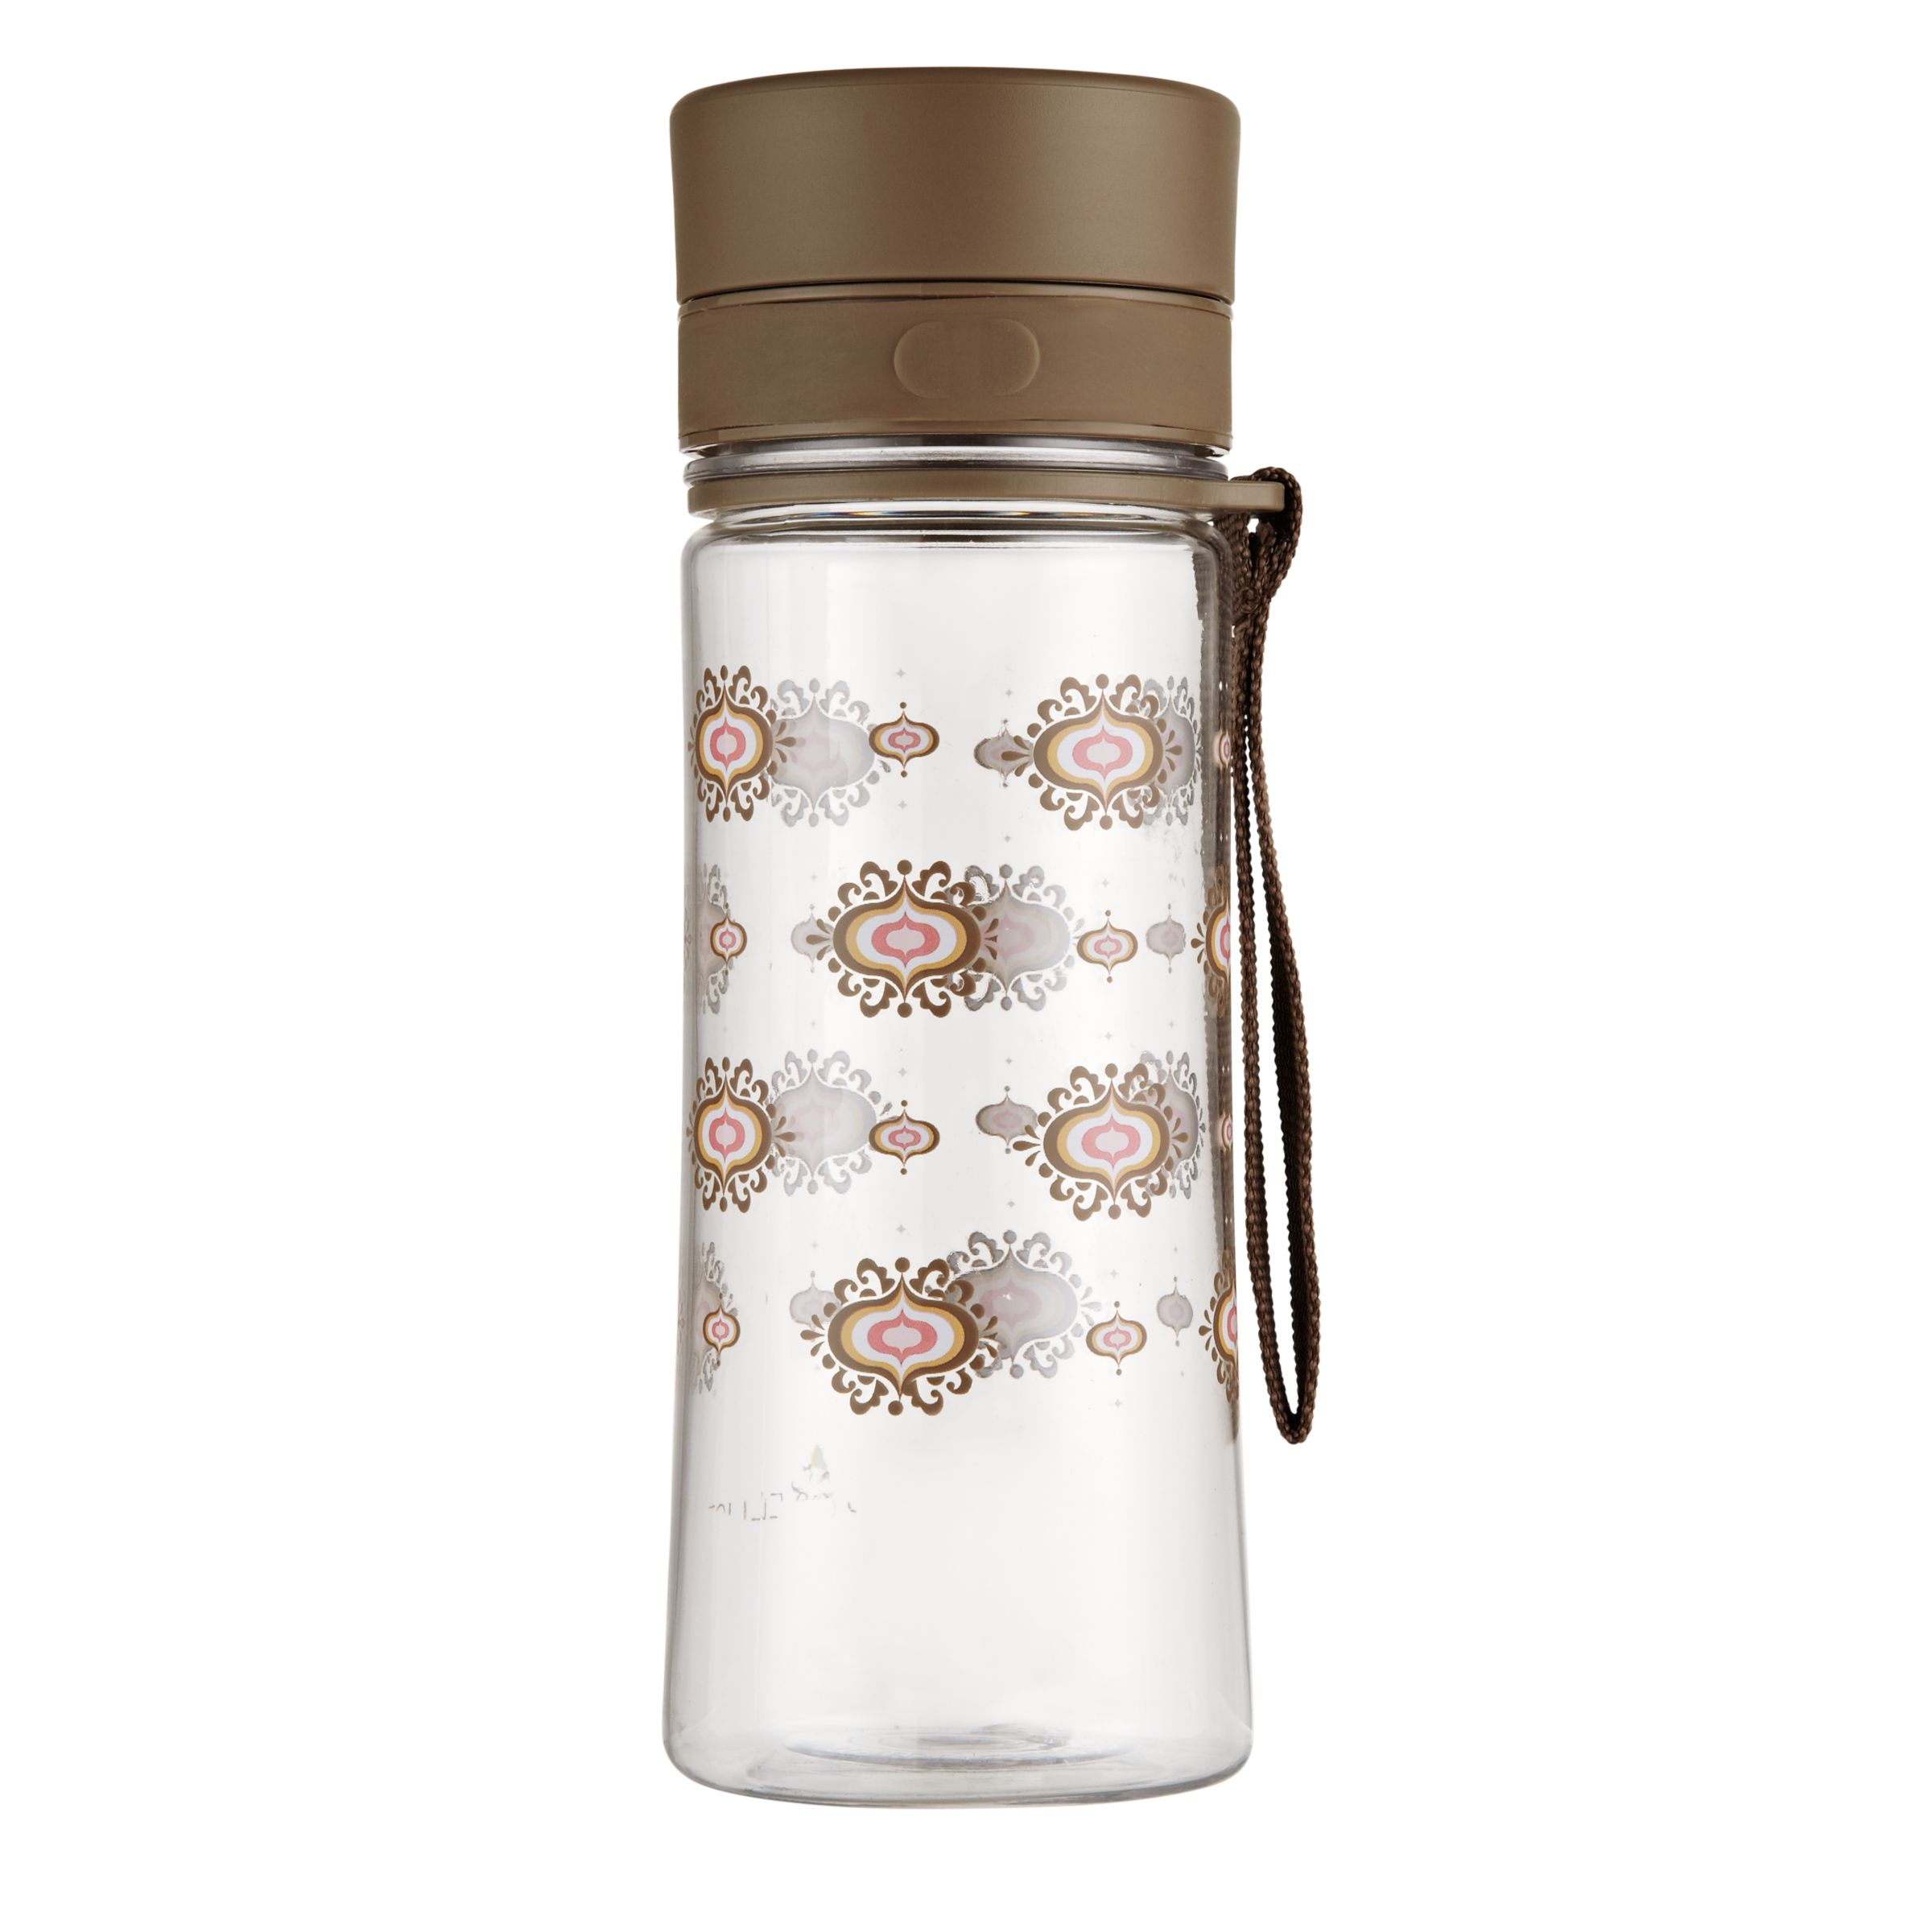 Beau & Elliot Filigree Drinks Bottle